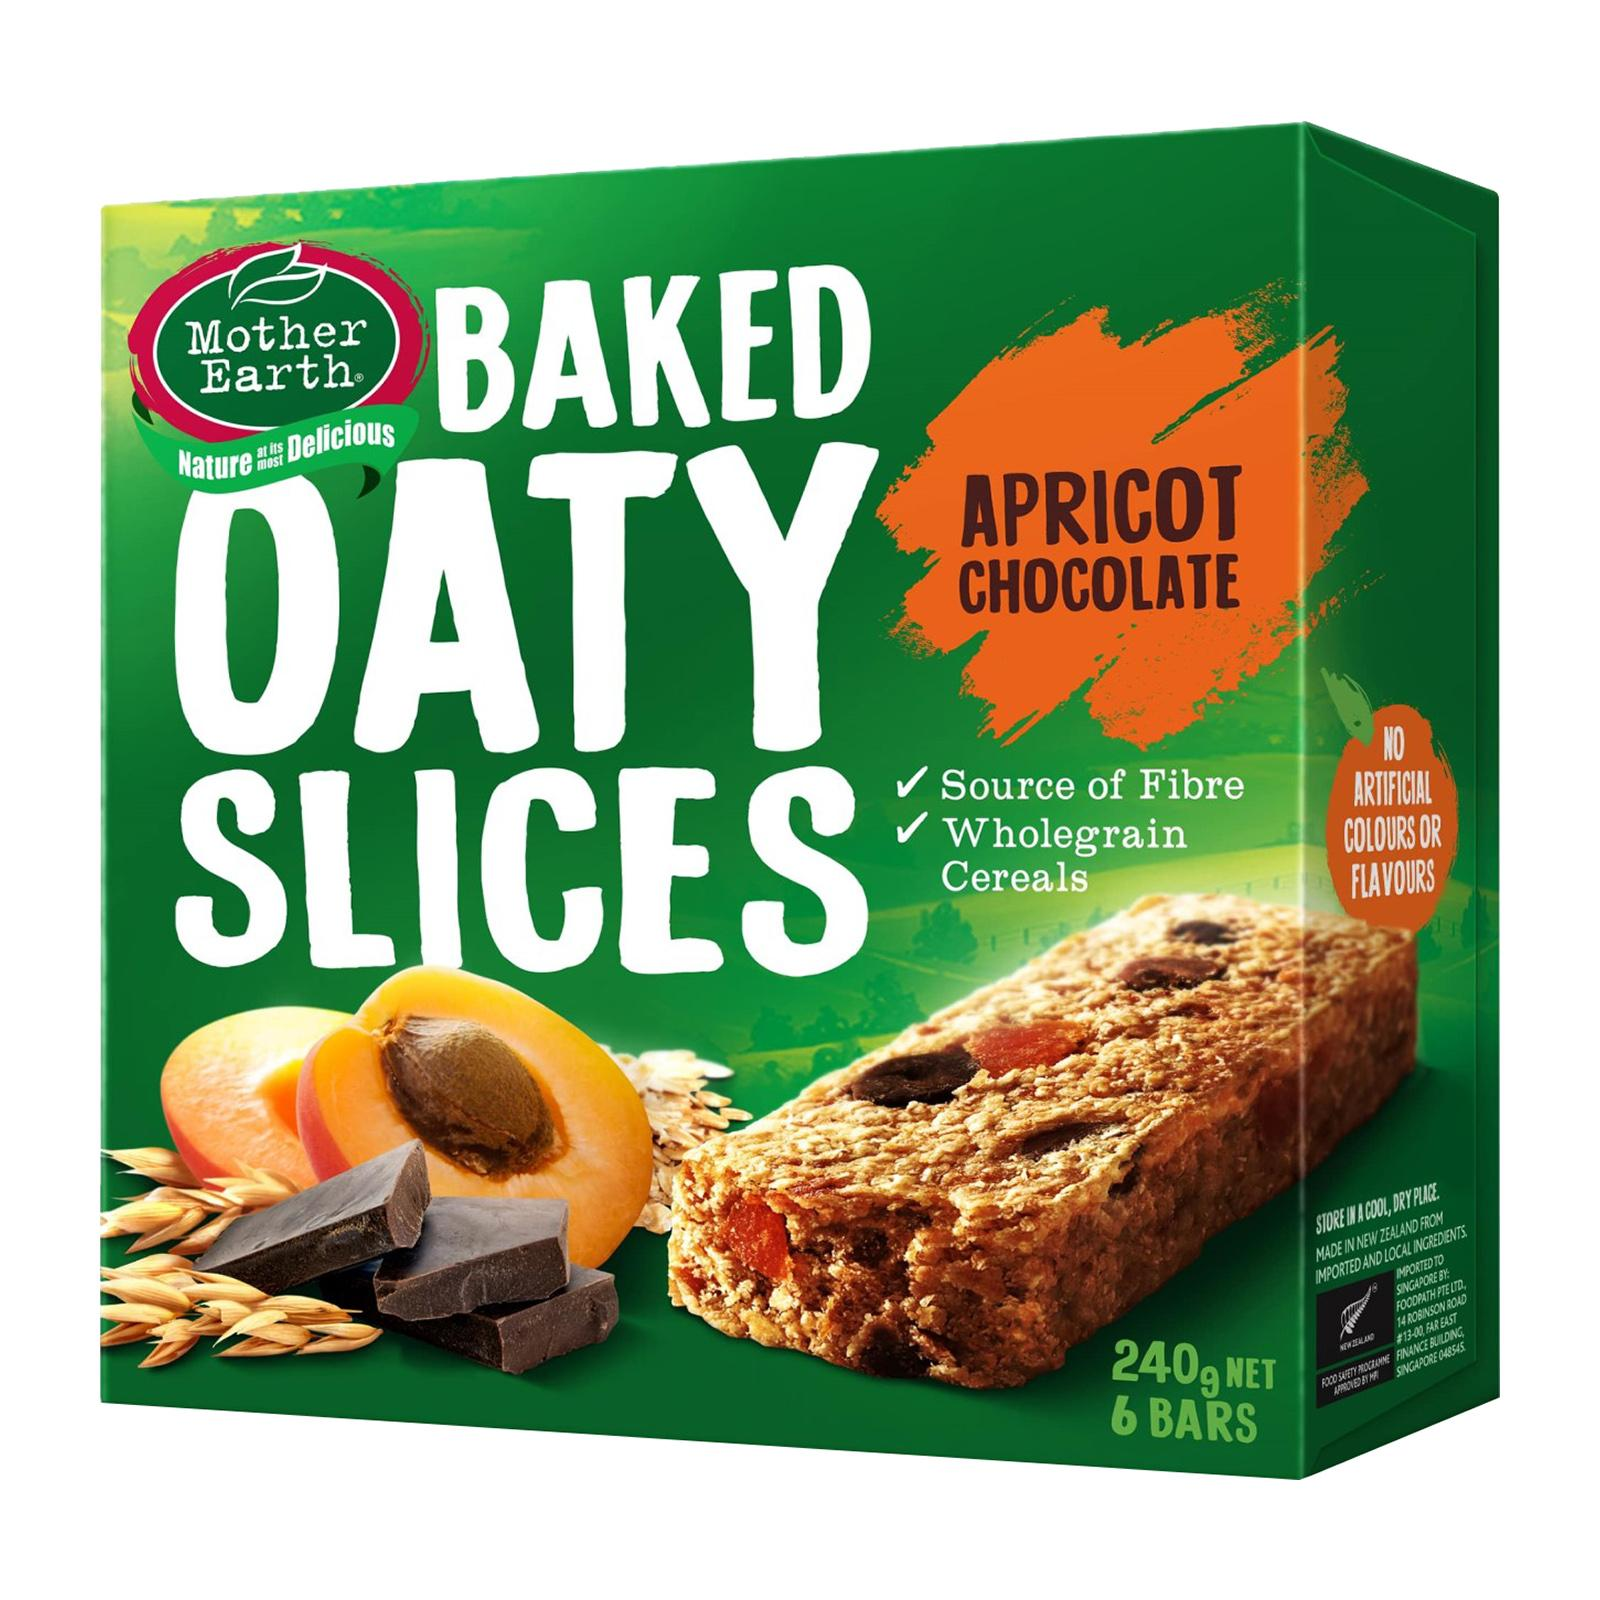 Mother Earth Baked Oaty Slice Apricot and Chocolate - by Optimo Foods